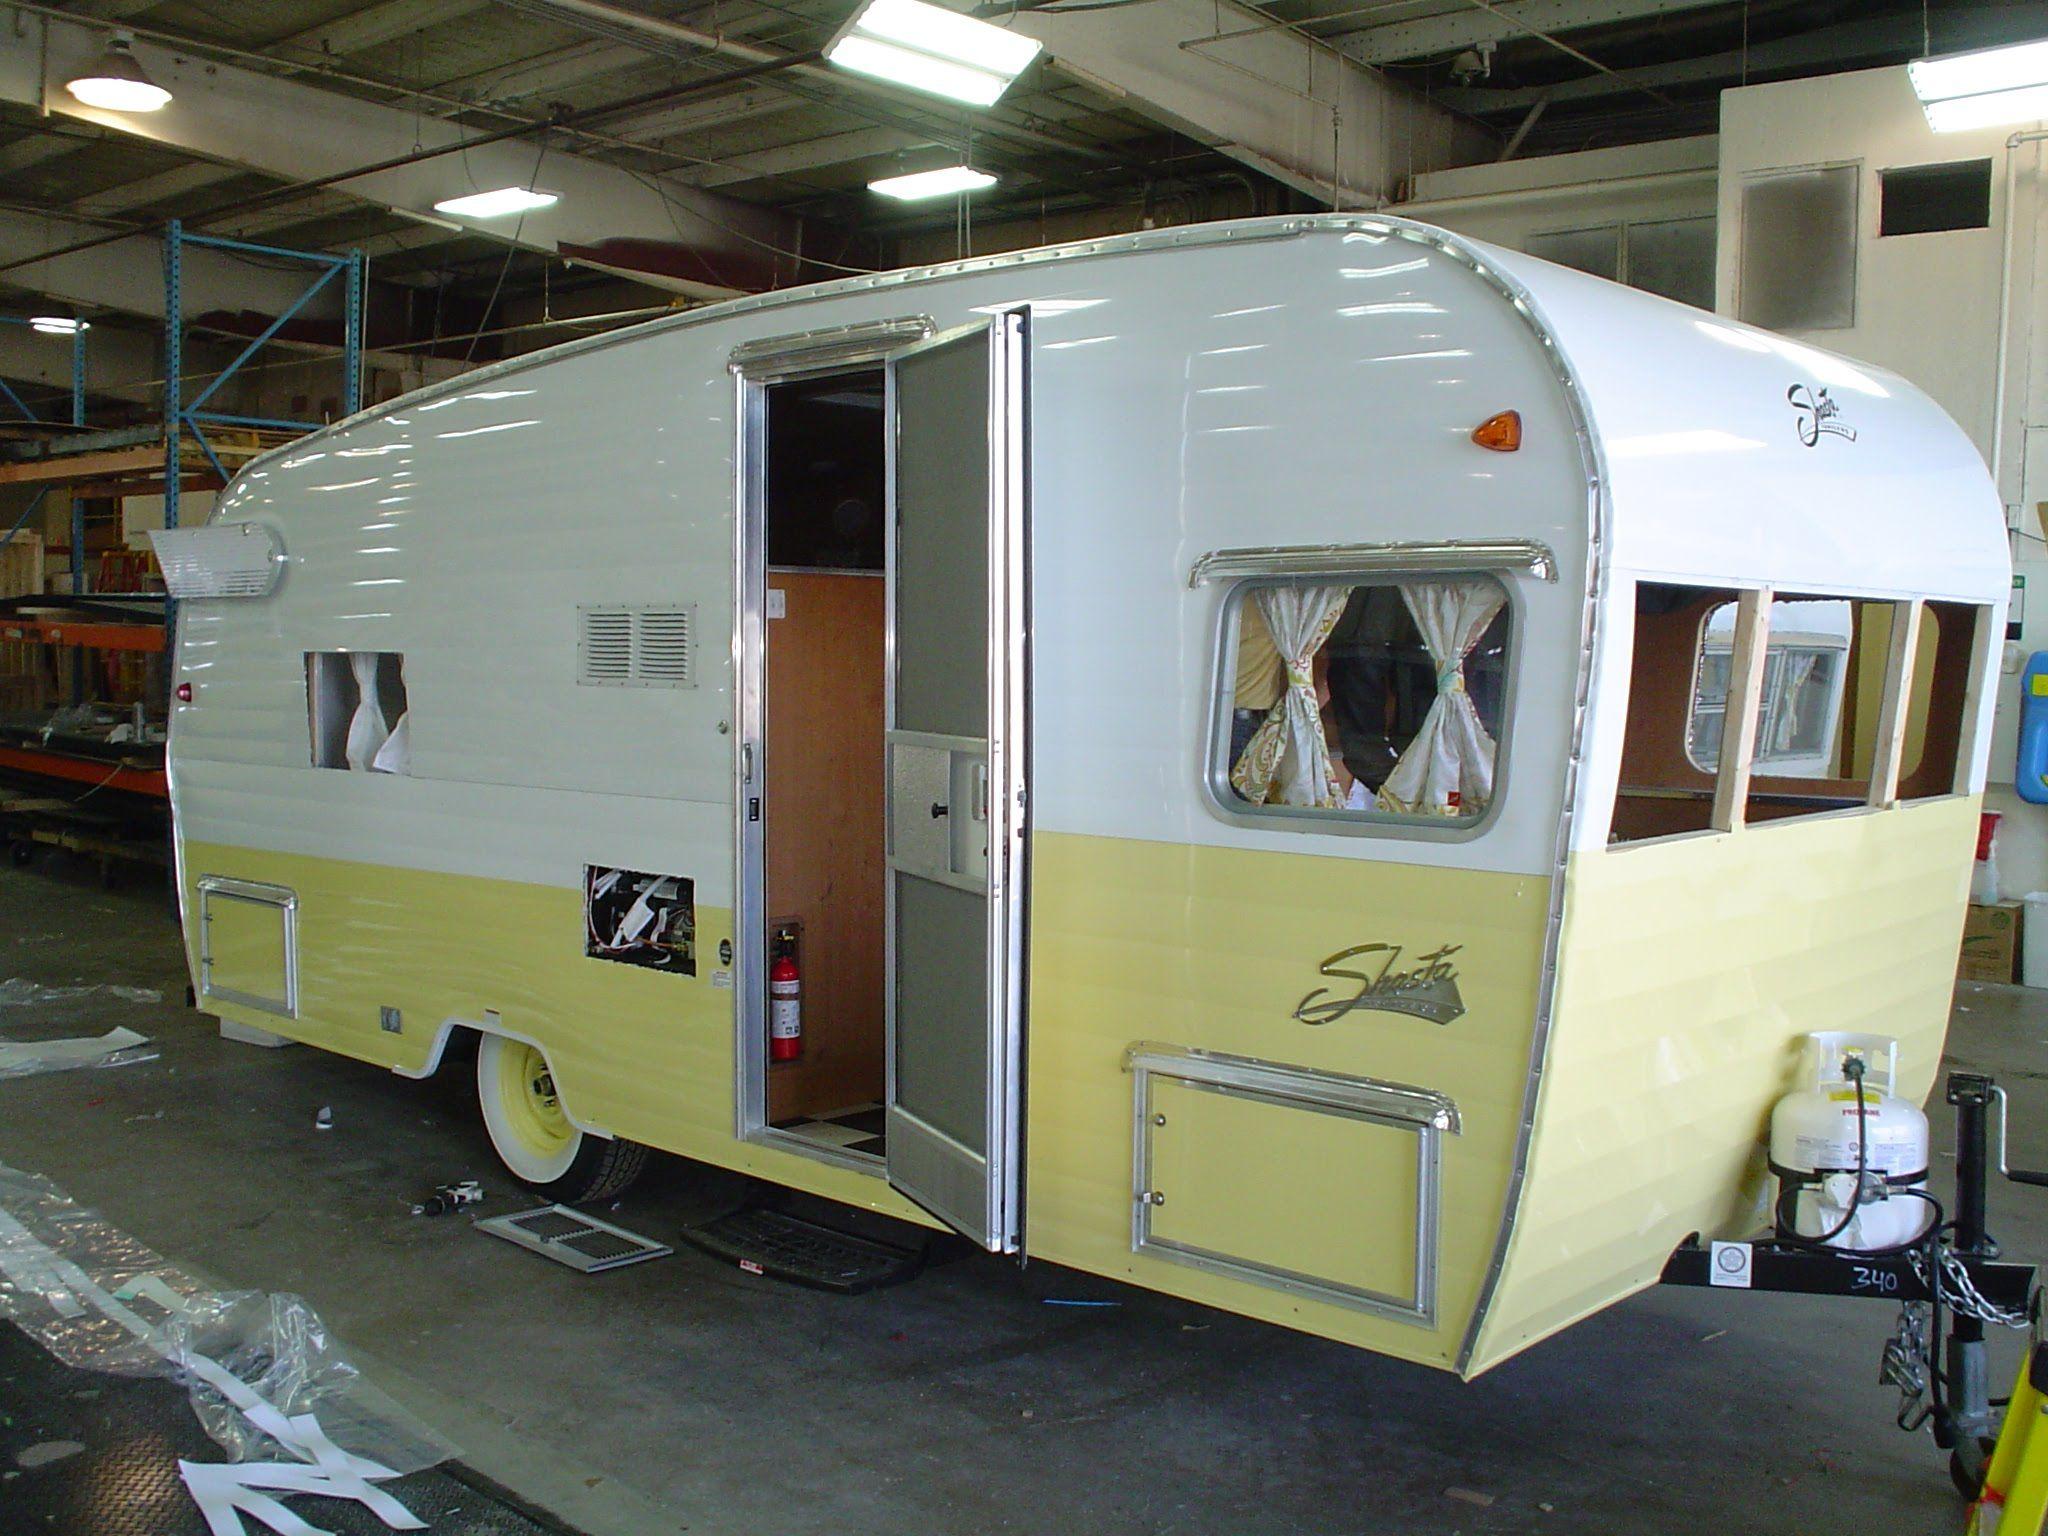 Coachman Trailer Floor Plans Let S Take A Look Inside The 2015 Shasta Airflyte 19 Foot